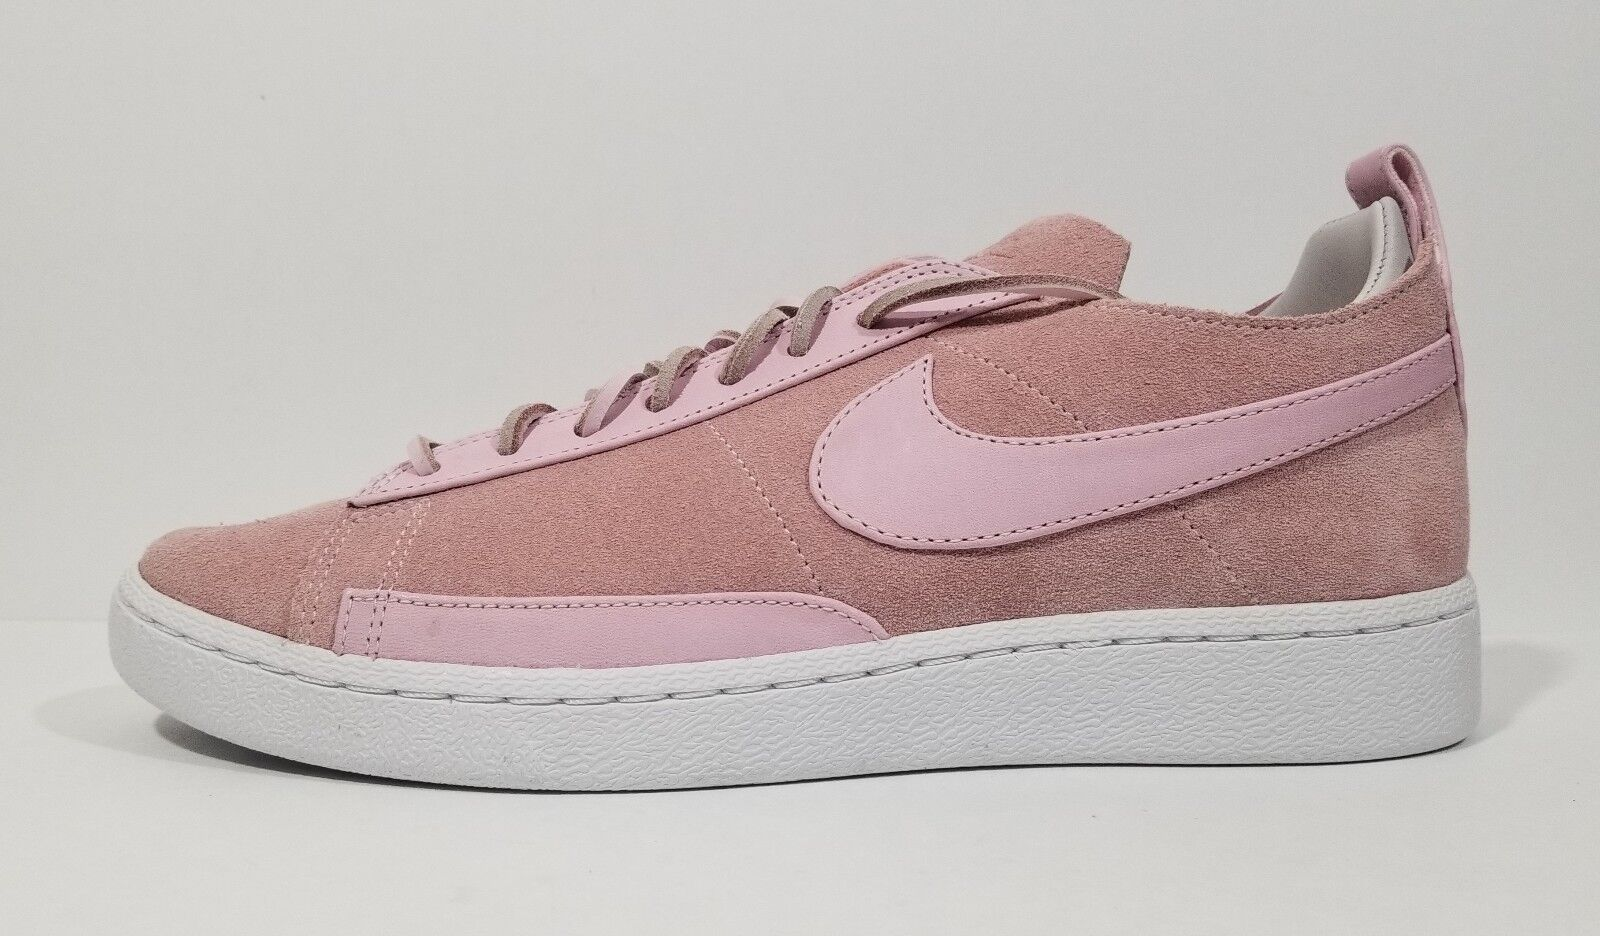 Nike Blazer Low CS Tech Craft NikeLab Mens Shoes Pink Size 10